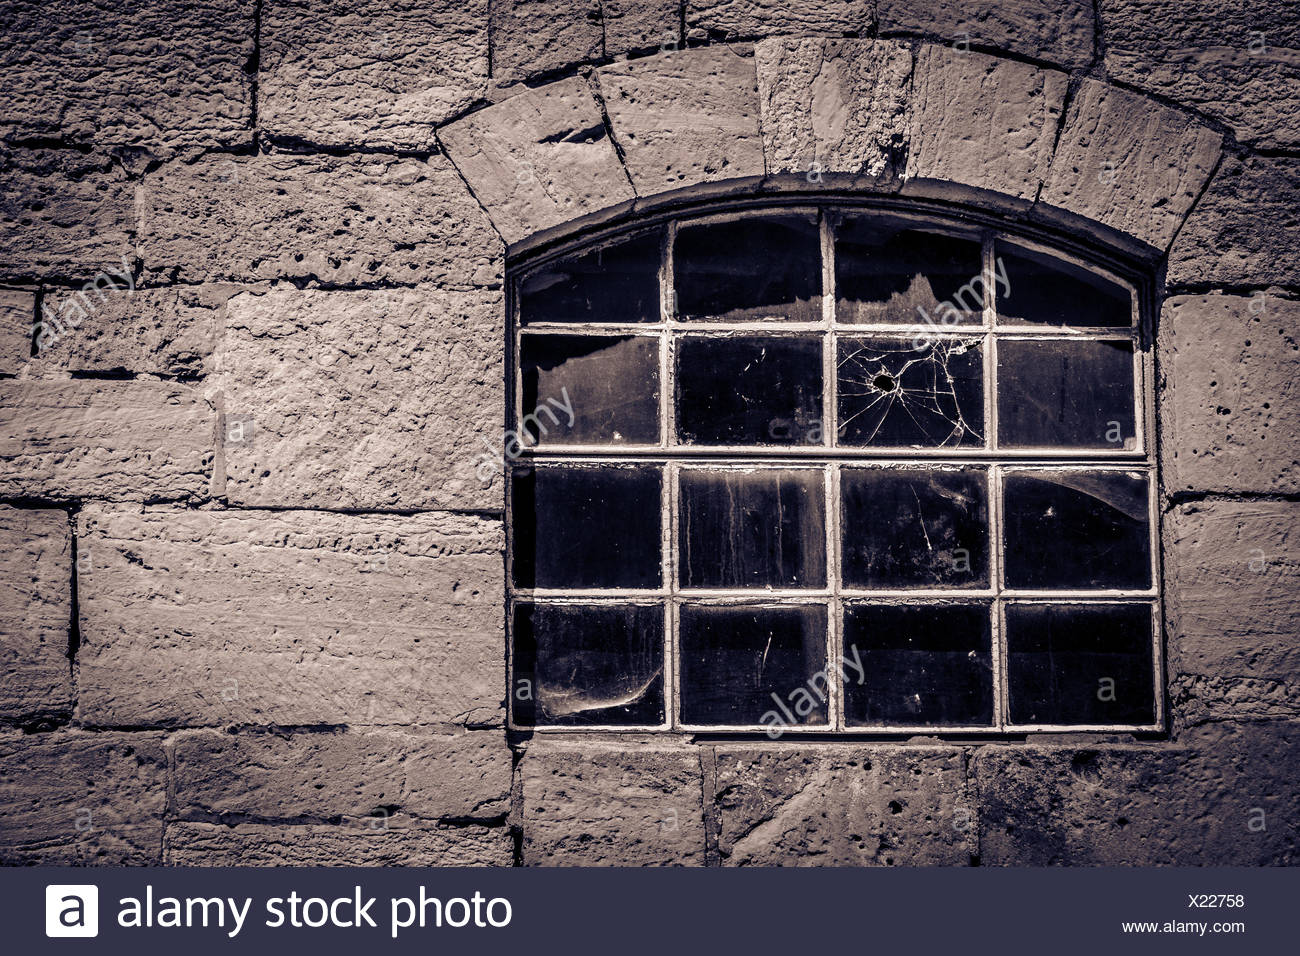 Ancient window in a stone cottage with a bullet hole in the glass<a href='http://de.wikipedia.org/wiki/Burg_Lohra' target='_blank'>Burg Lohra</a> Großlohra, Thuringia, Germany - Stock Image